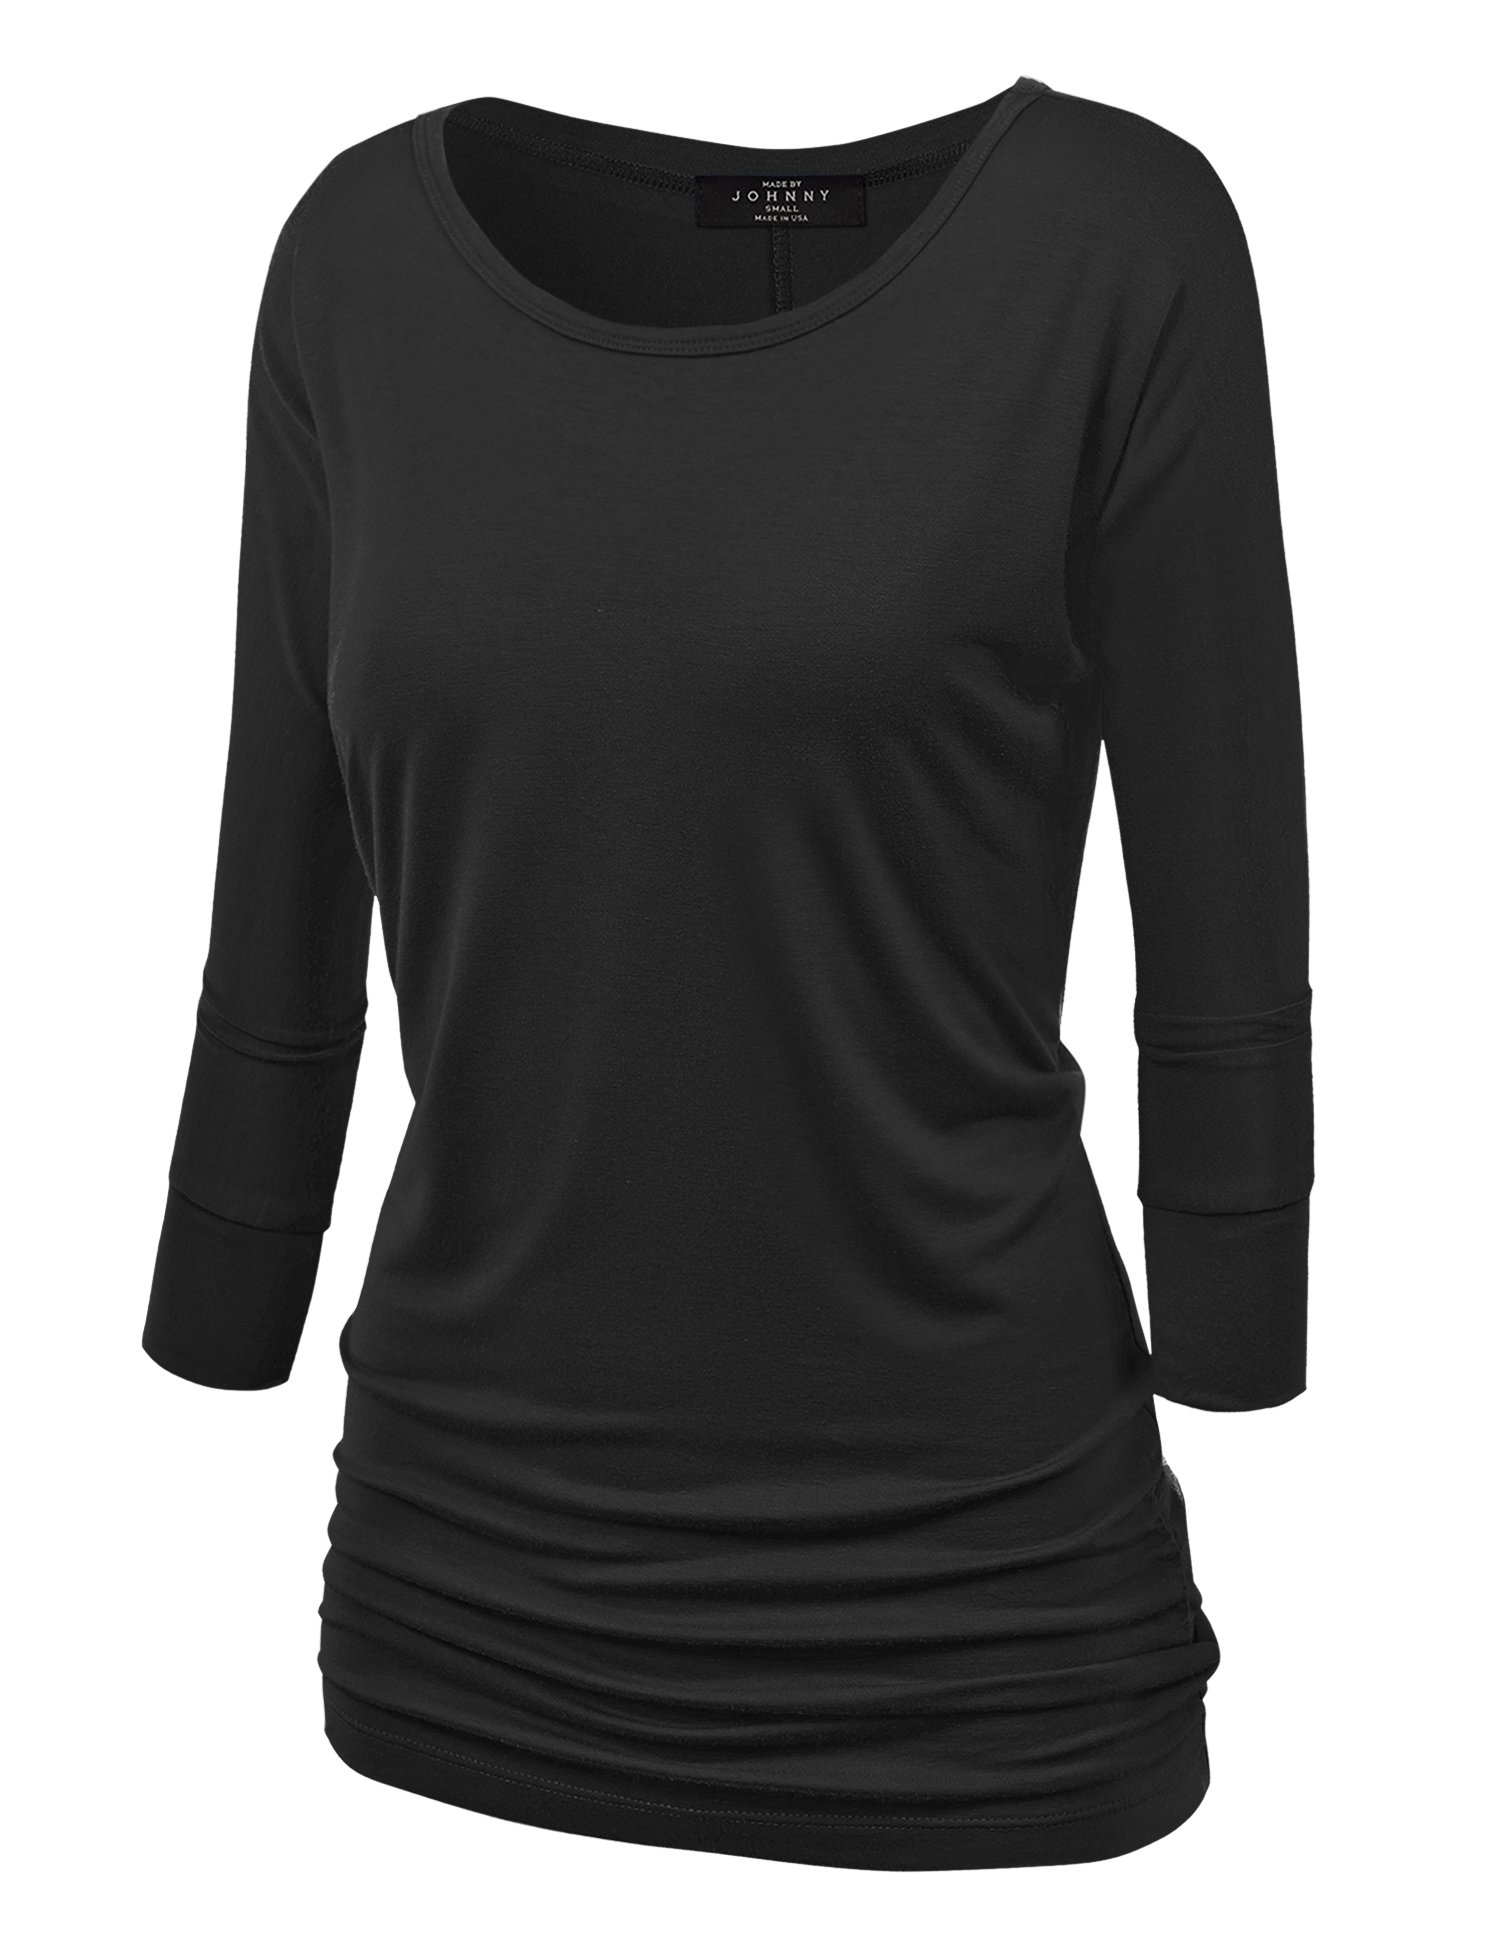 Made By Johnny WT822 Womens 3/4 Sleeve with Drape Top L Black